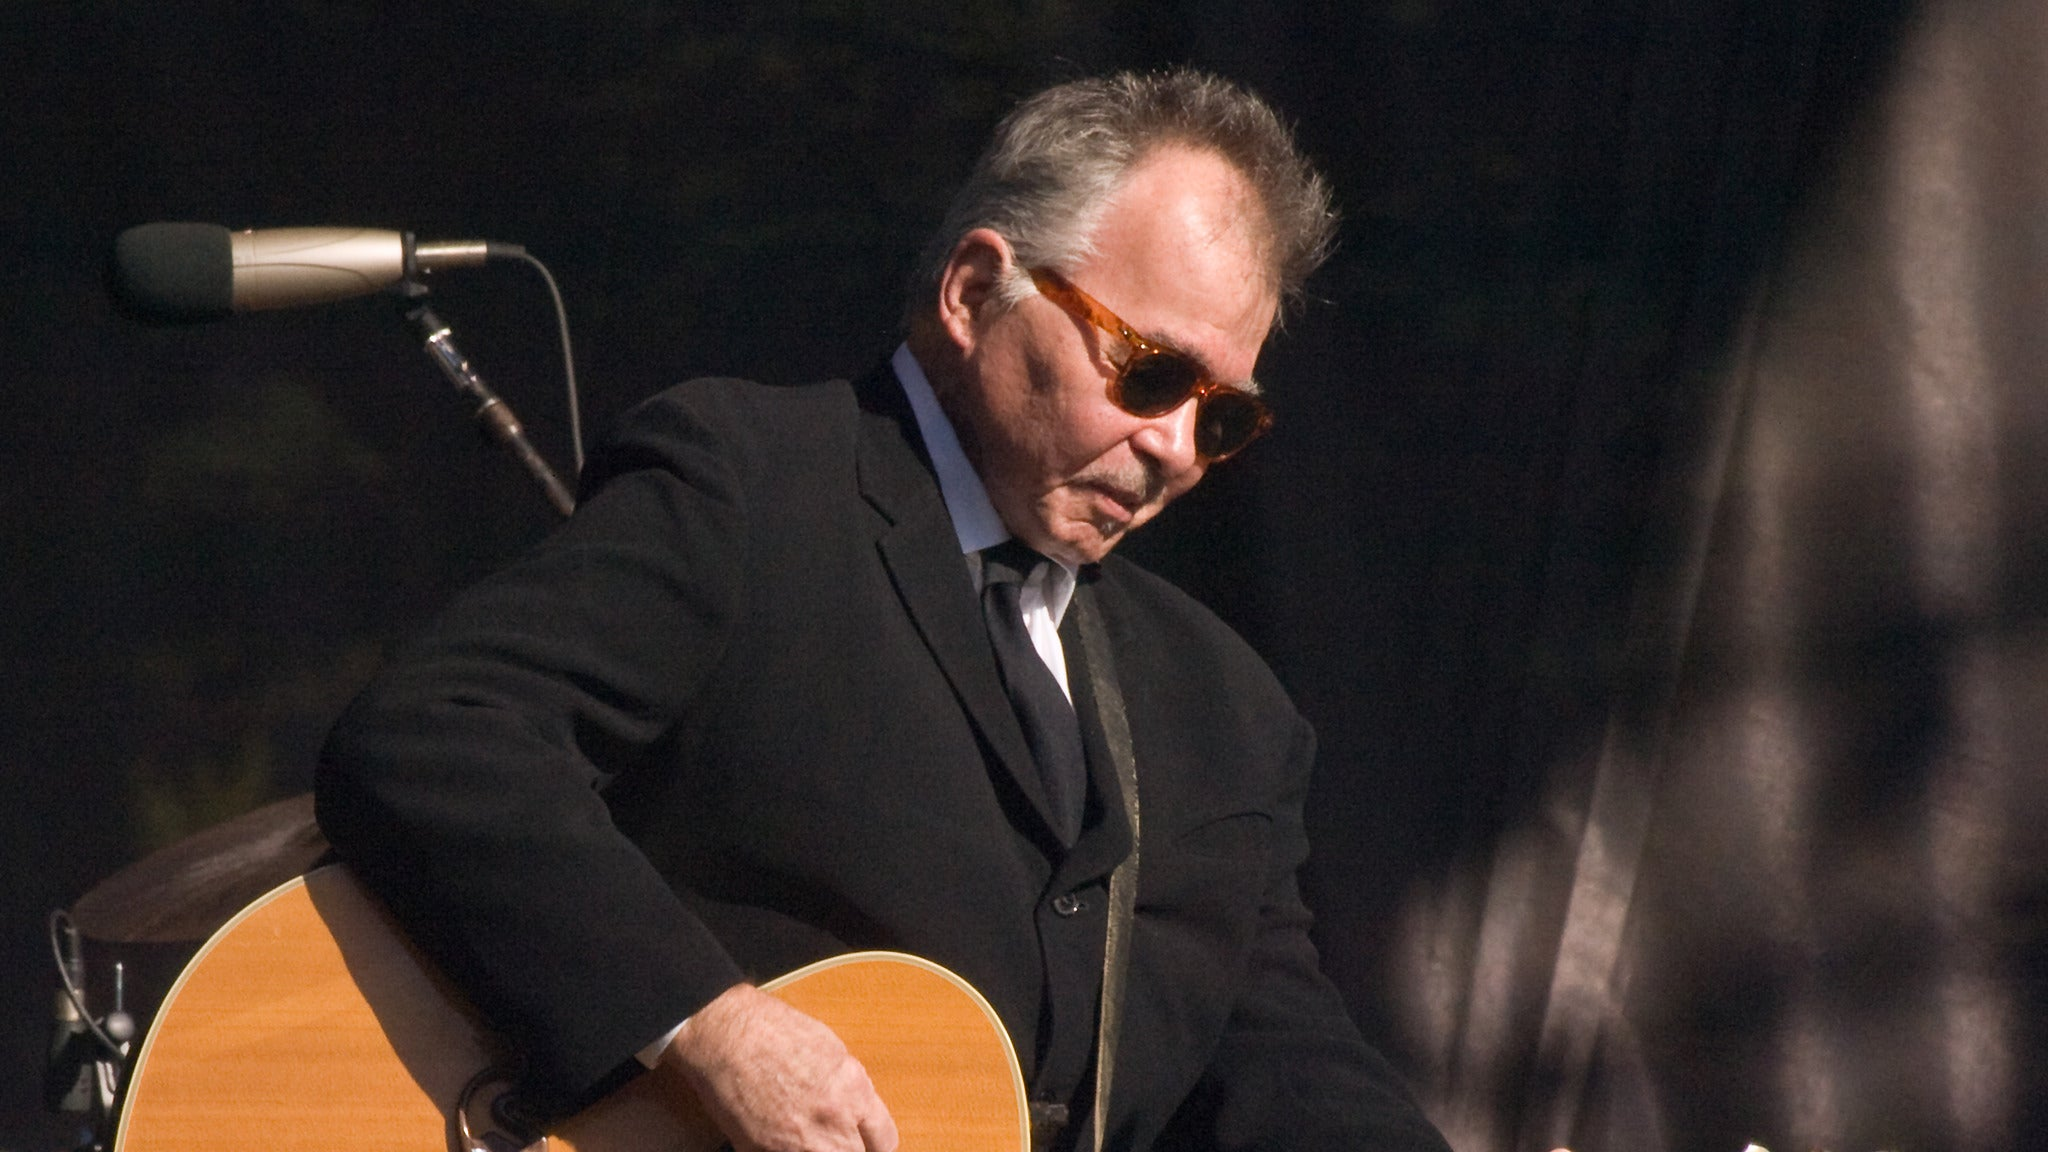 John Prine with special guest Dan Auerbach of The Black Keys